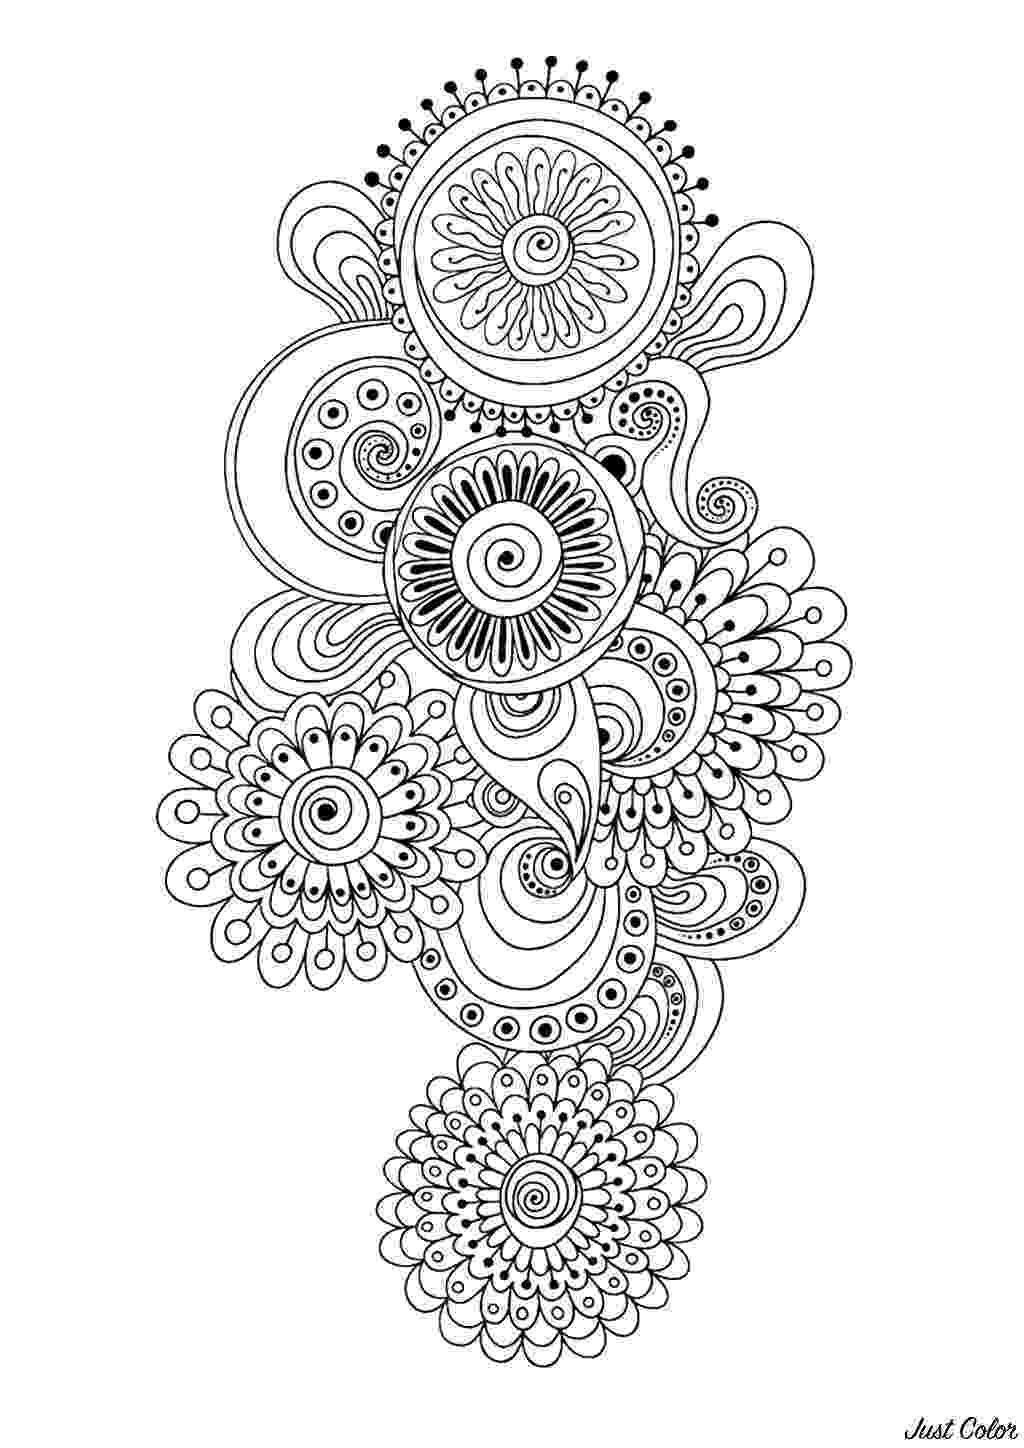 anti stress coloring book review zen antistress abstract pattern inspired anti stress review book coloring stress anti